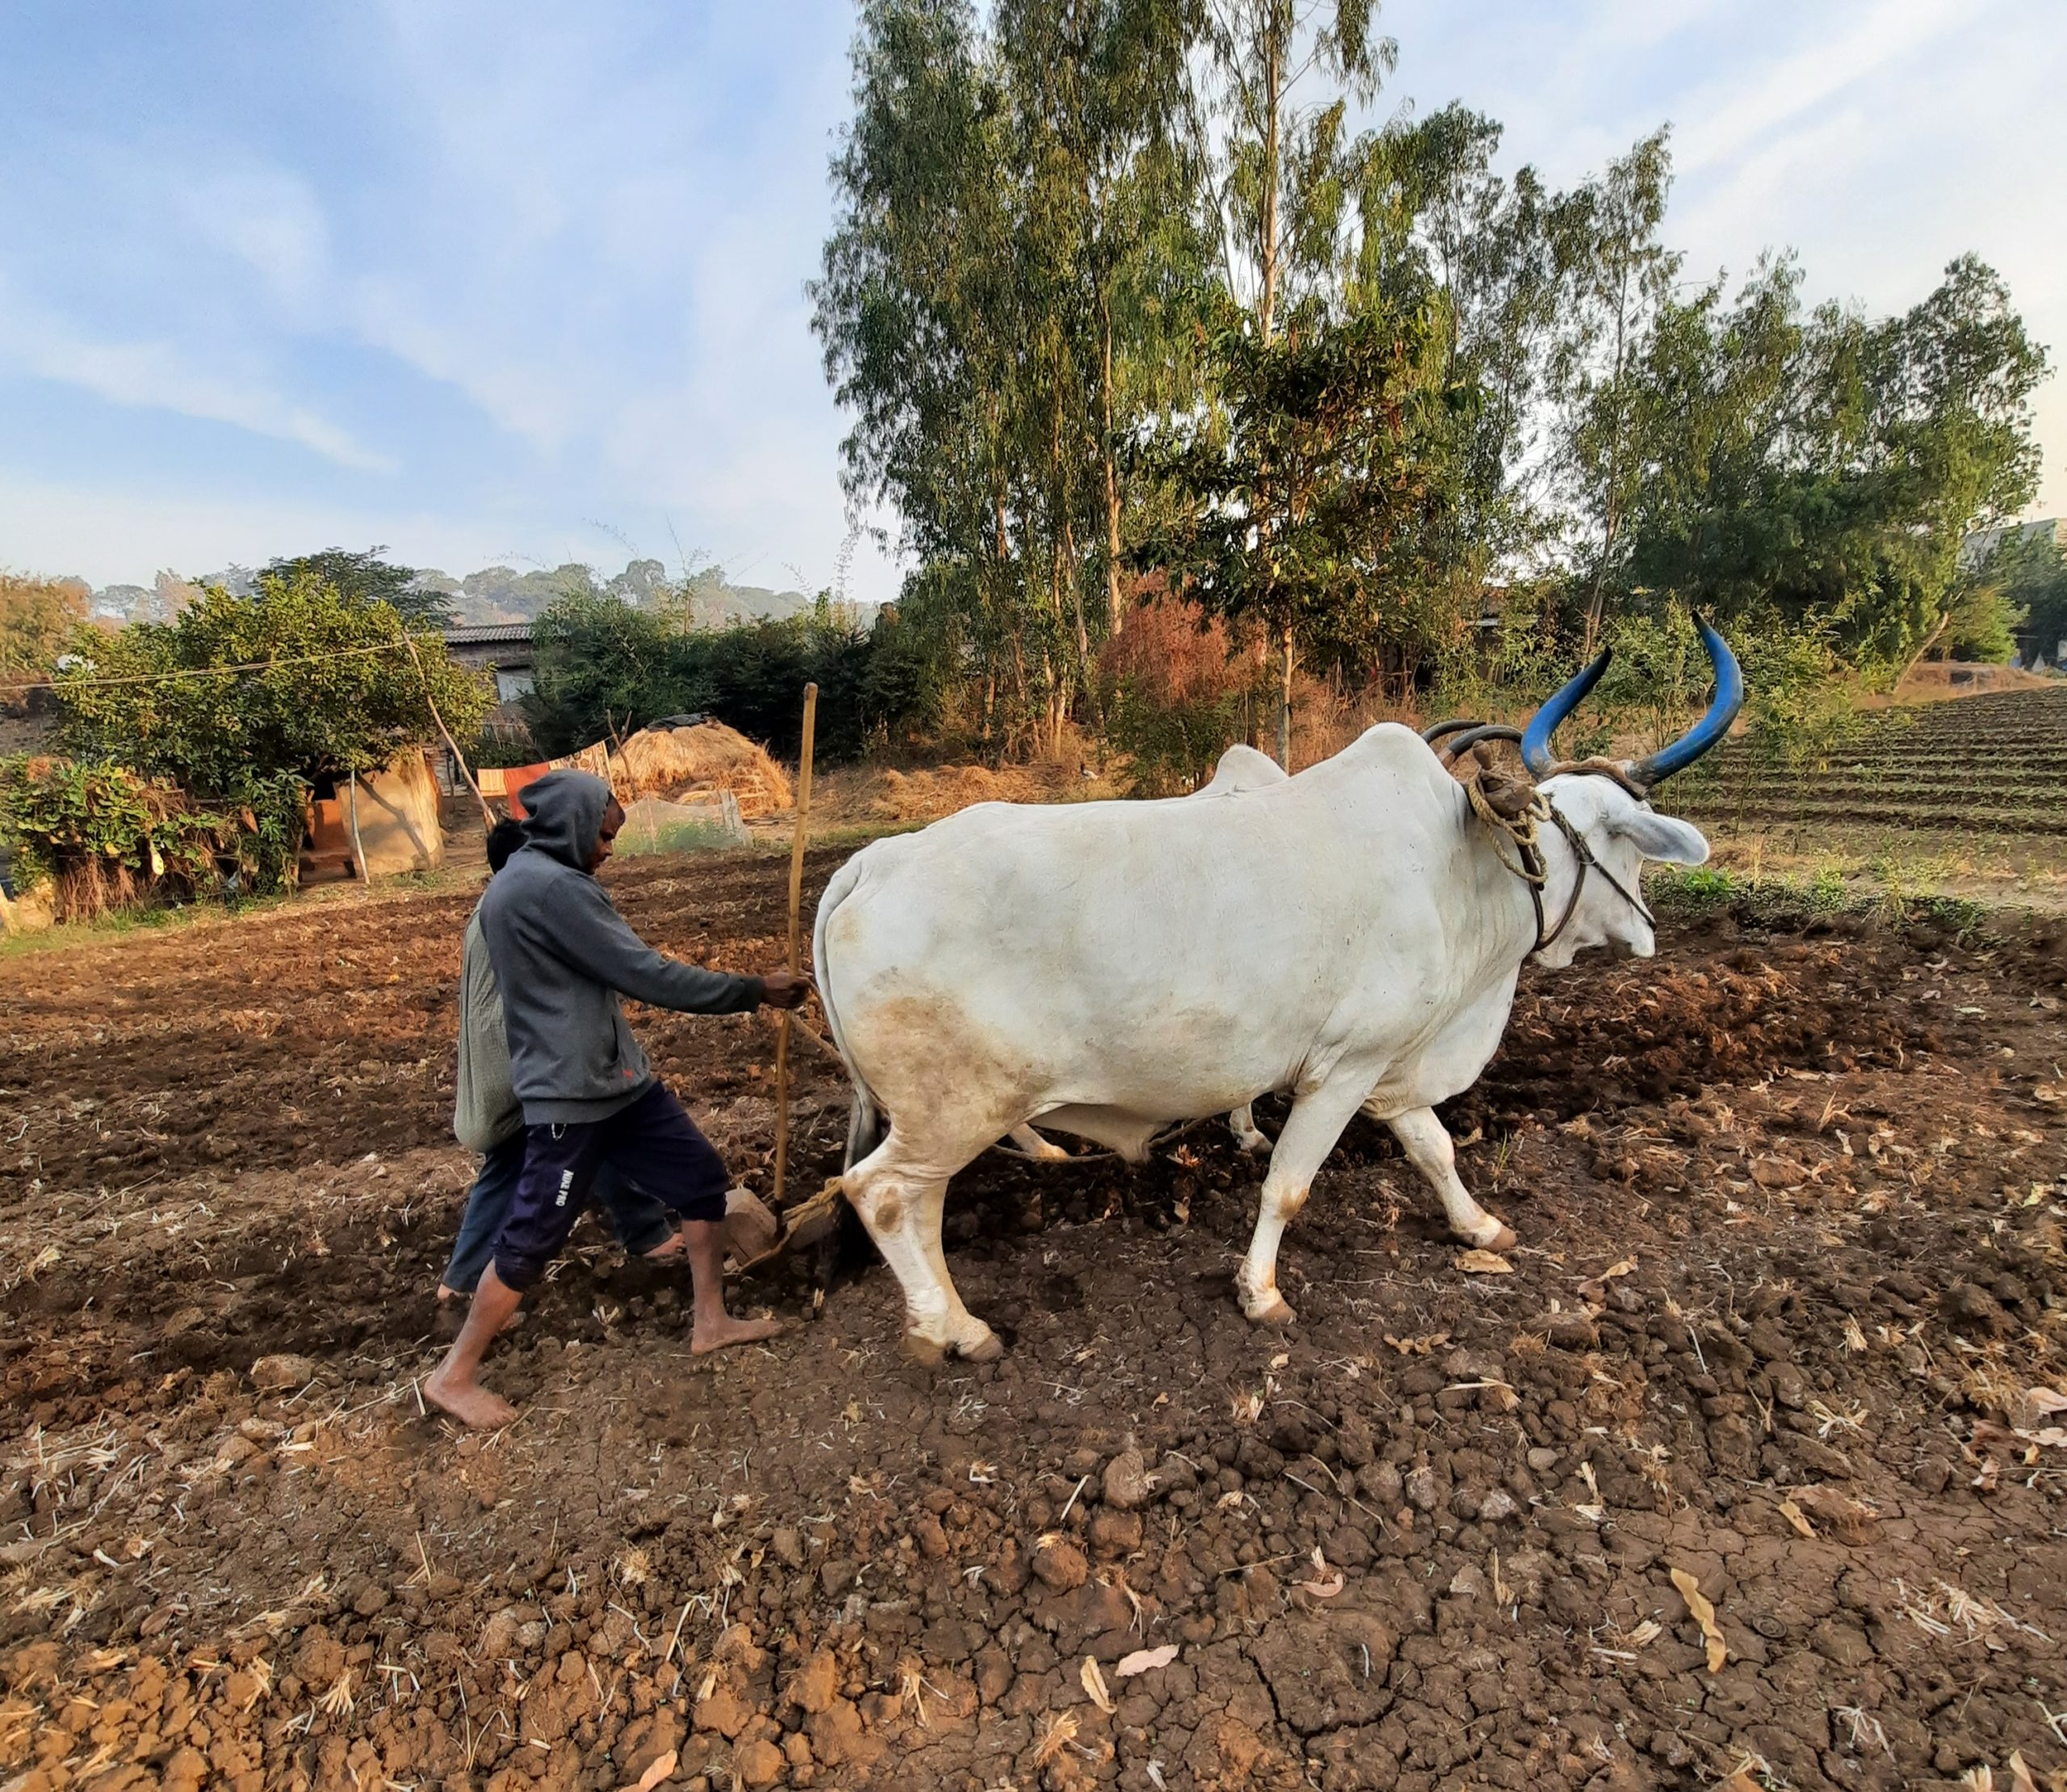 Farmers plough the field with oxen